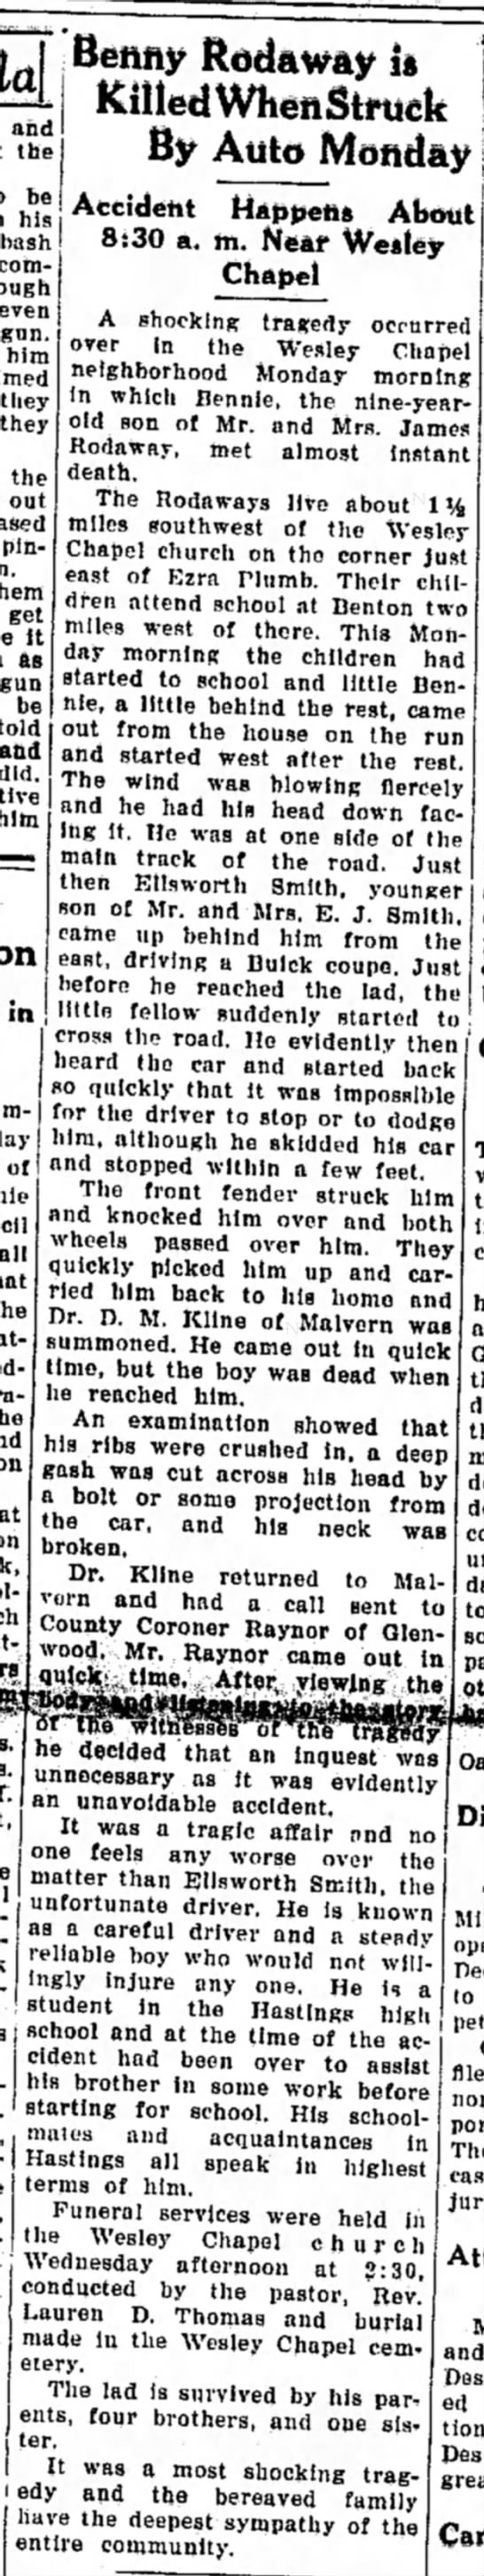 Bennie Rodaway - Nov 1930 Accident - and the be oe his com evei gun bin tliej the'...